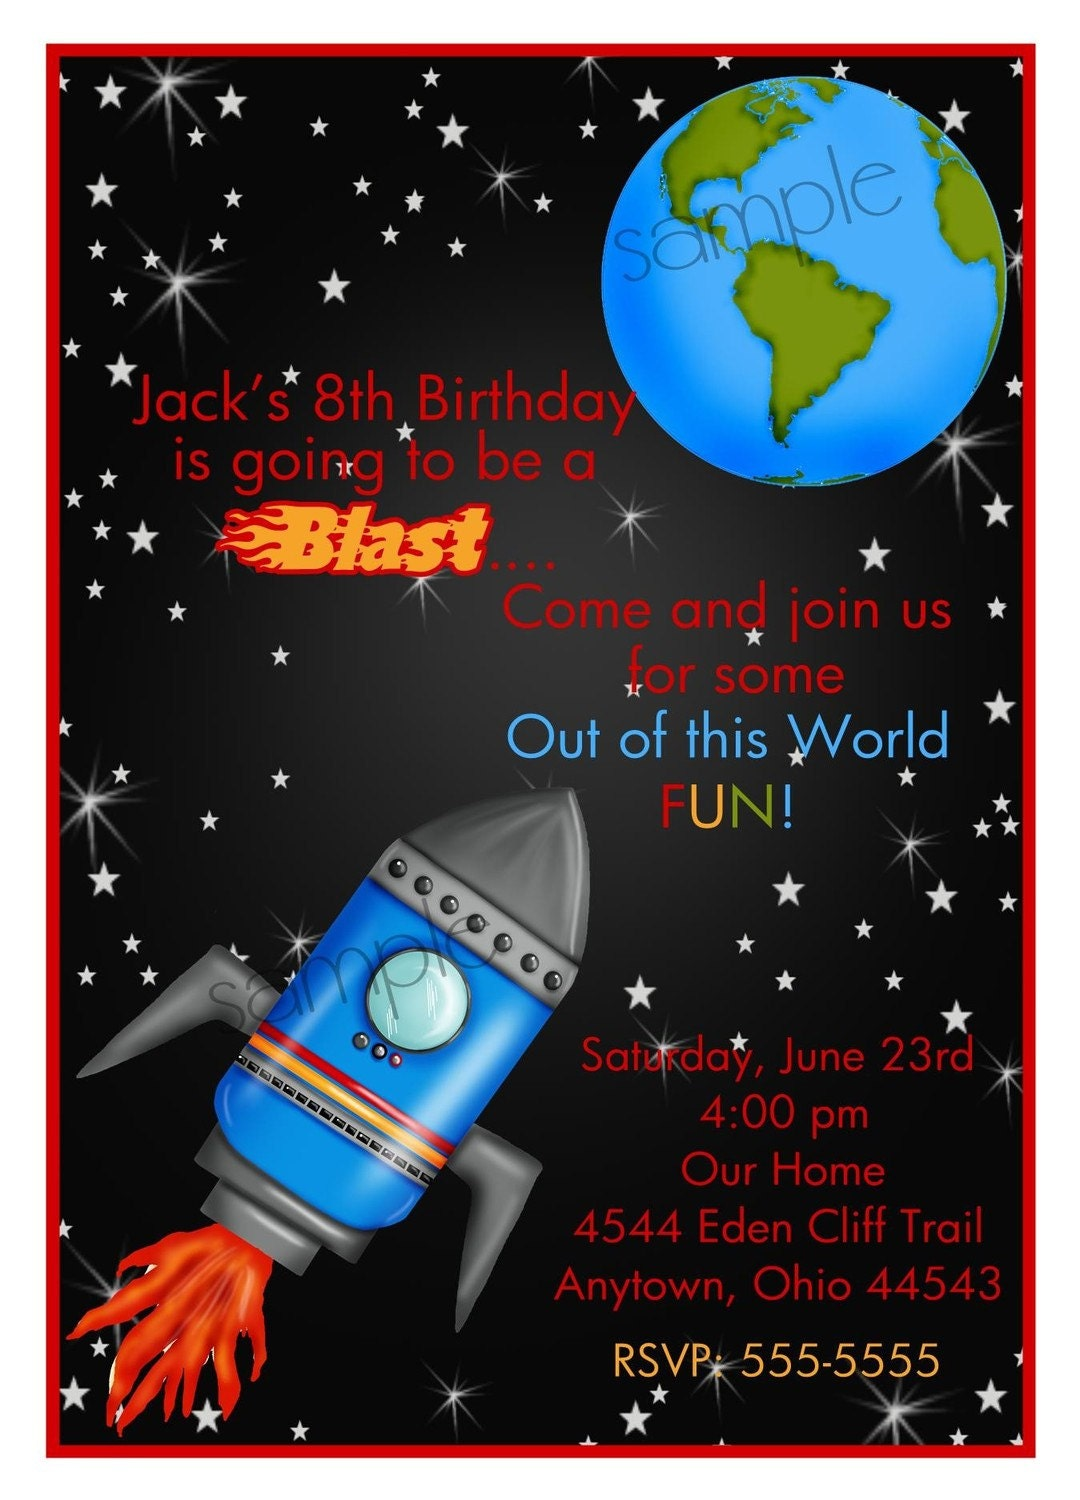 Rocket Ship Invitations Outer Space by LittlebeaneBoutique ...